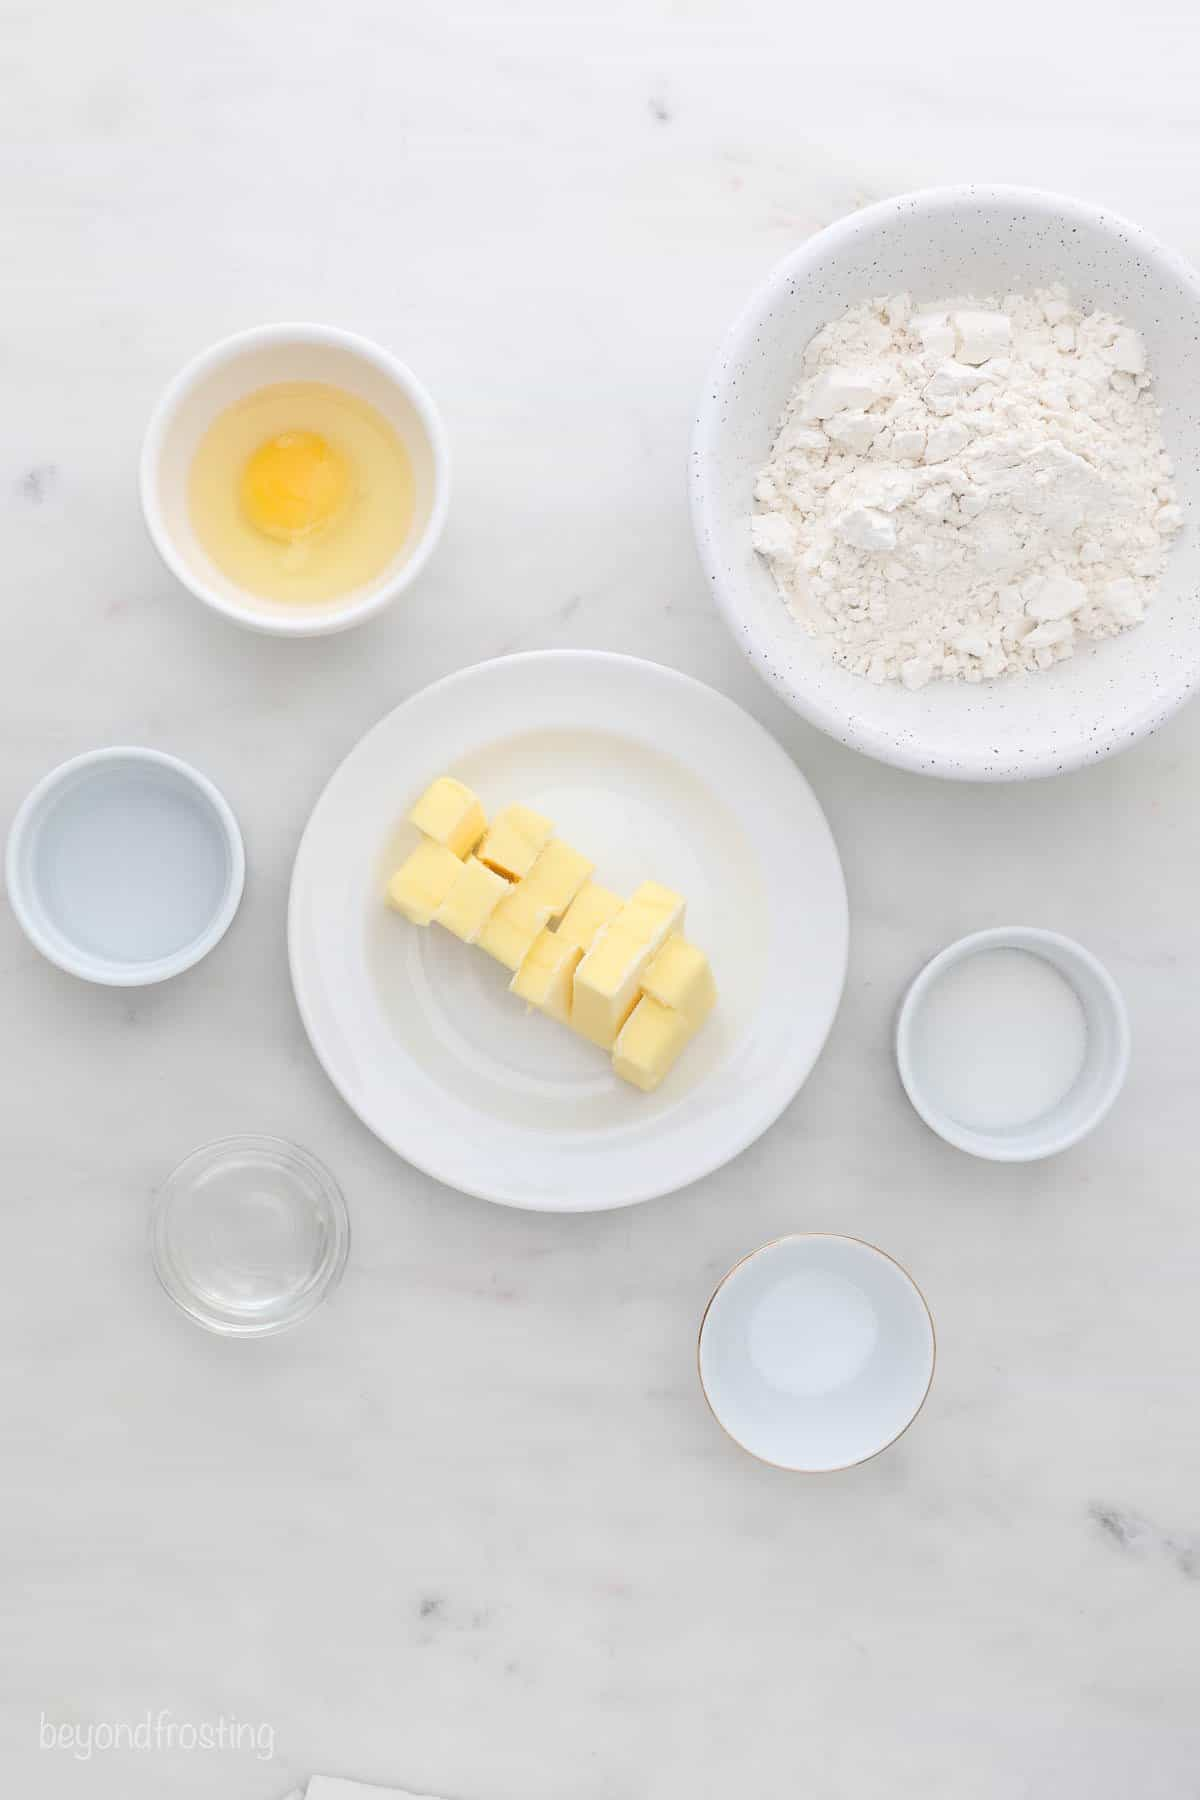 Ingredients for a gluten-free pie crust measured out into small bowls